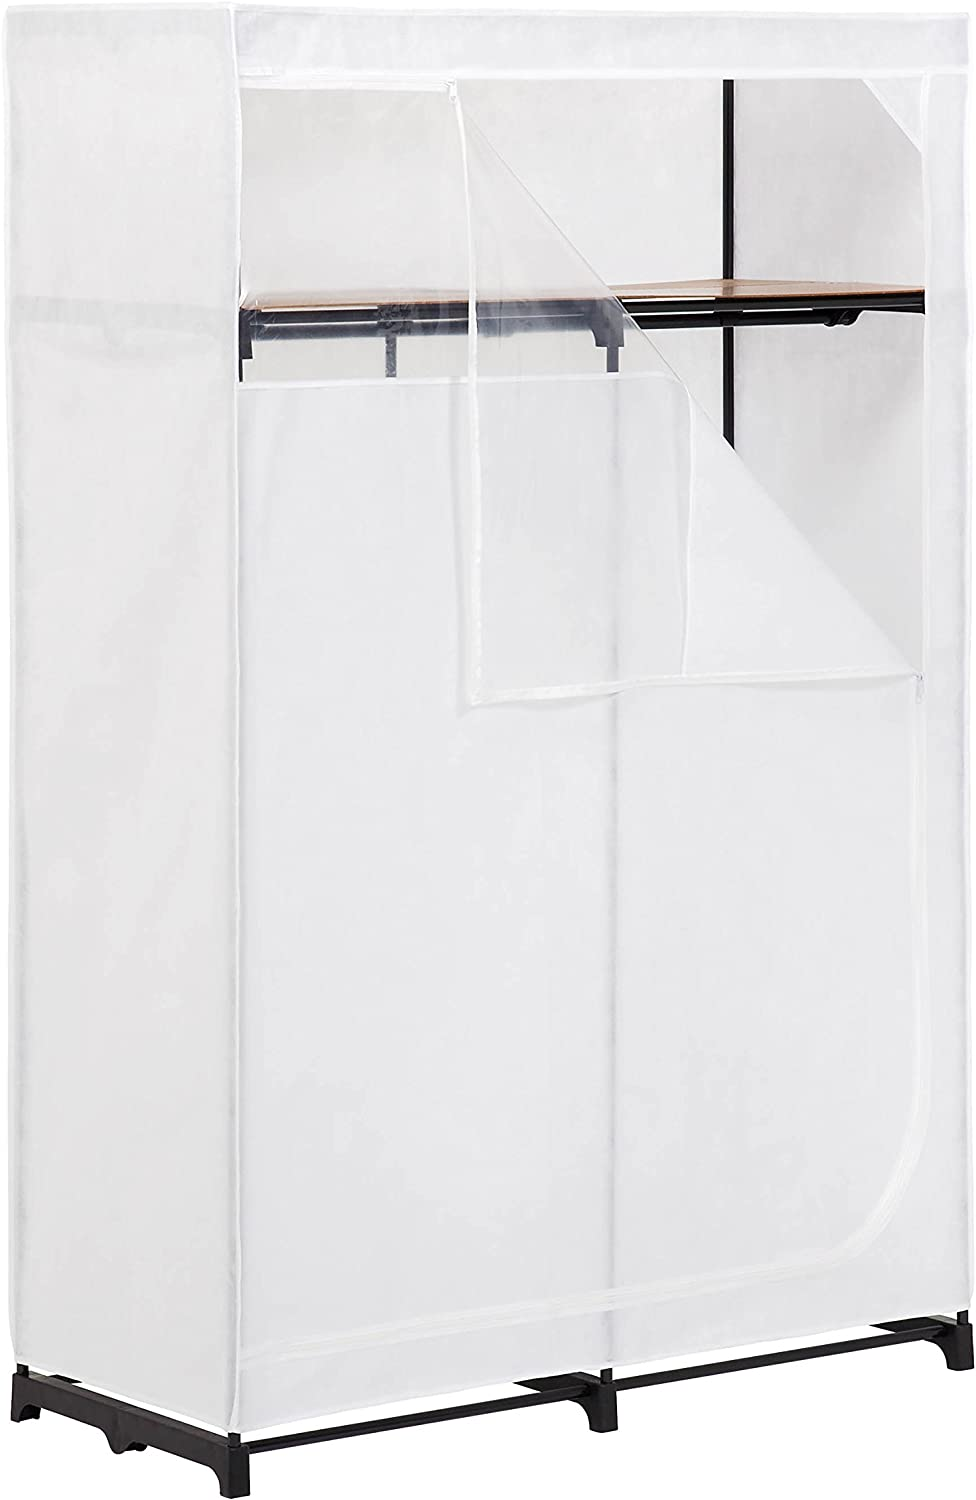 Honey-Can-Do Super sale shopping period limited WRD-01898 46-Inch Portable Storage Clothing Closet